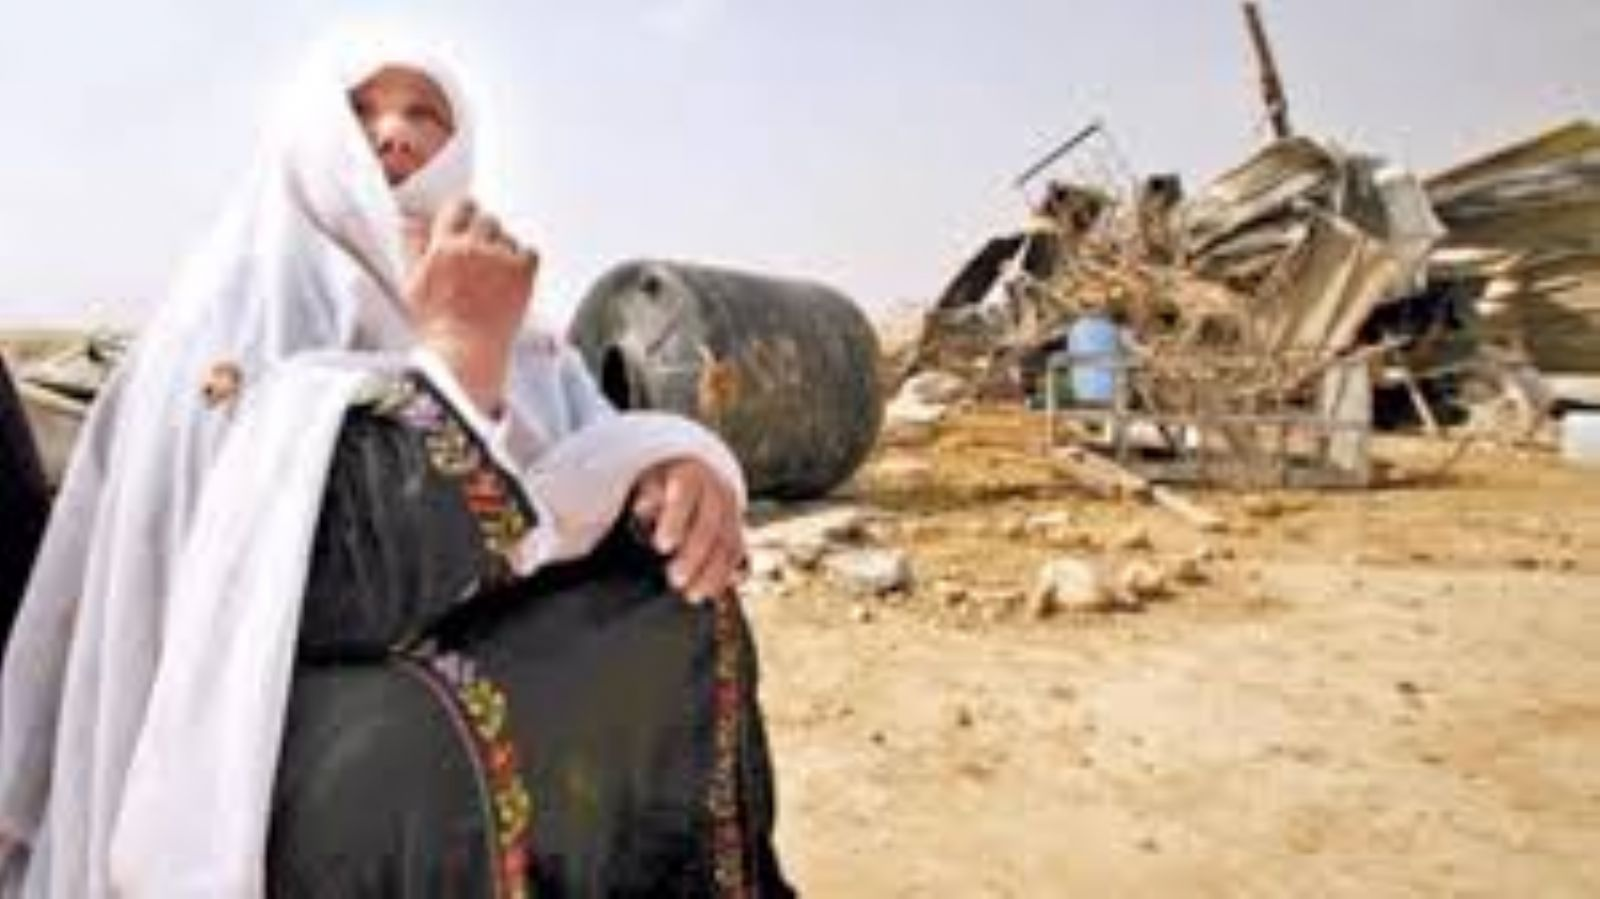 uptick in number of Bedouin structures demolished in Israel last year